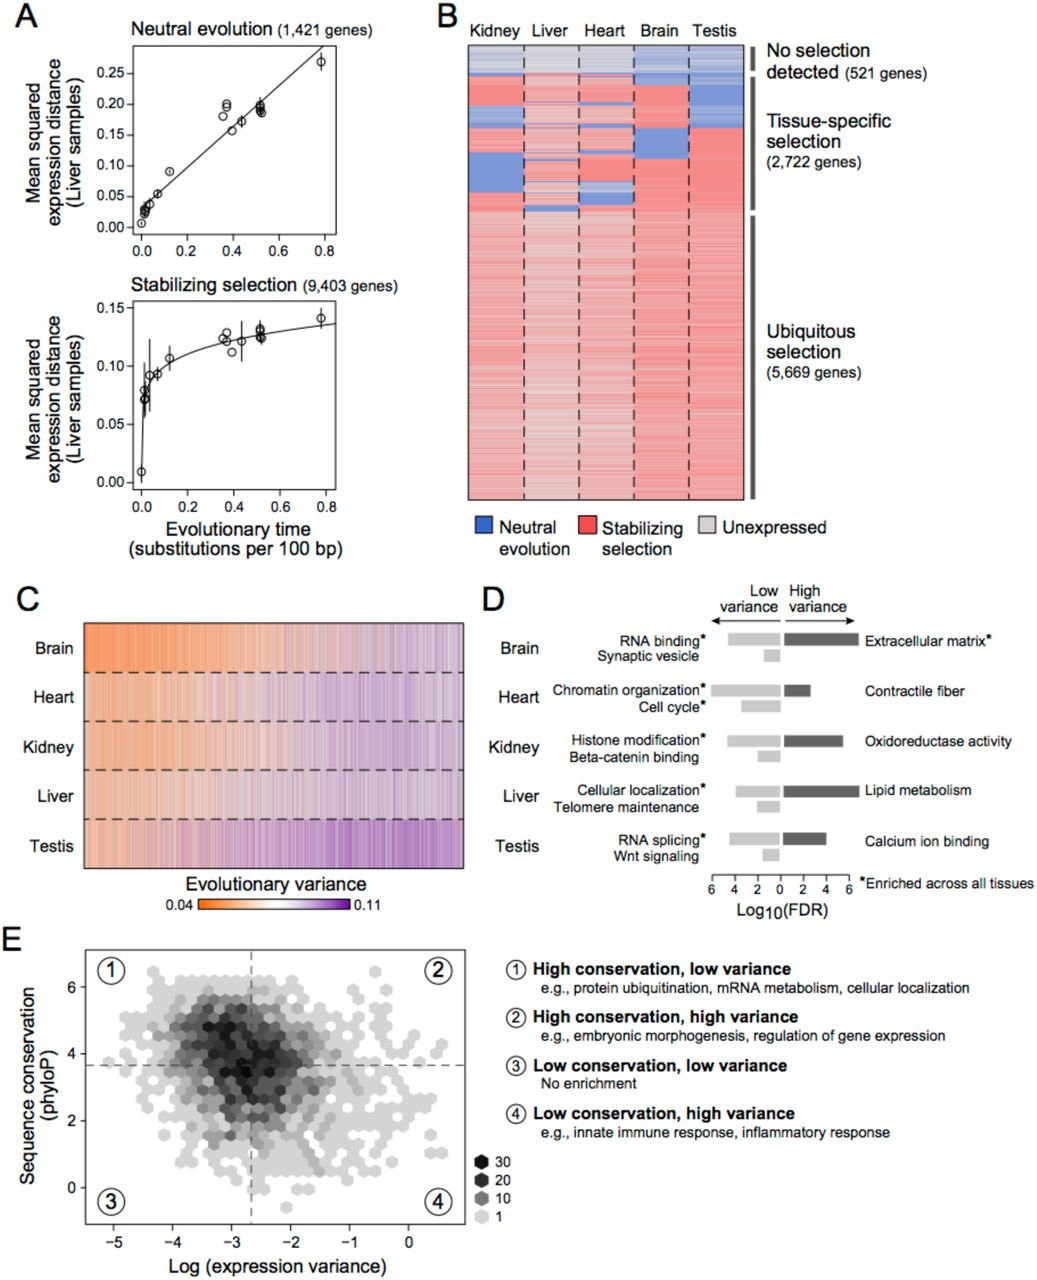 A quantitative model for characterizing the evolutionary history of